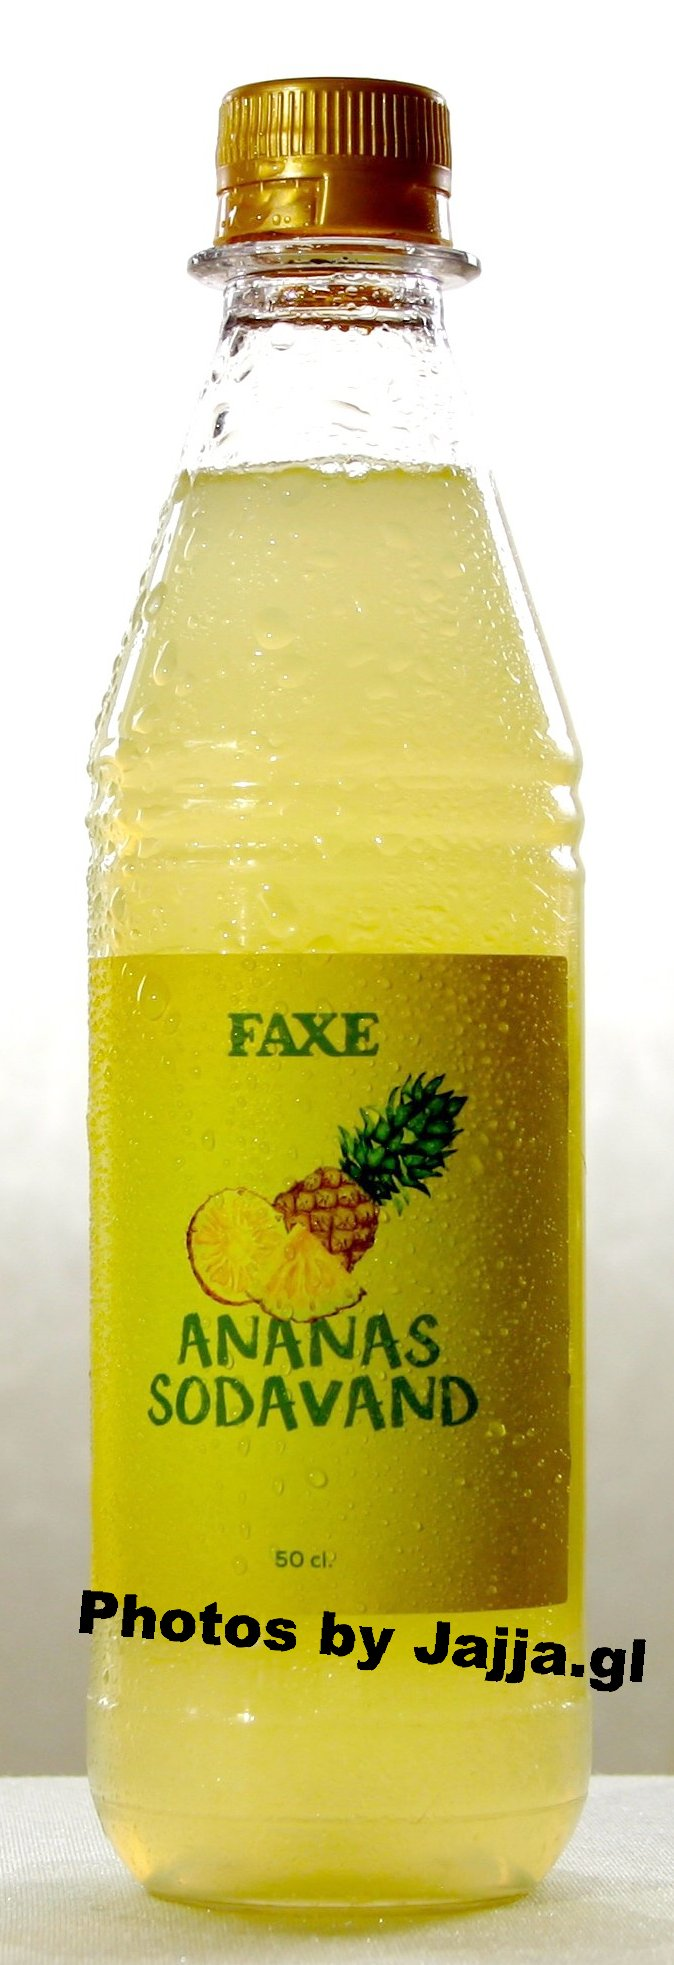 Ananas - Faxe, 50cl (inkl. pant)